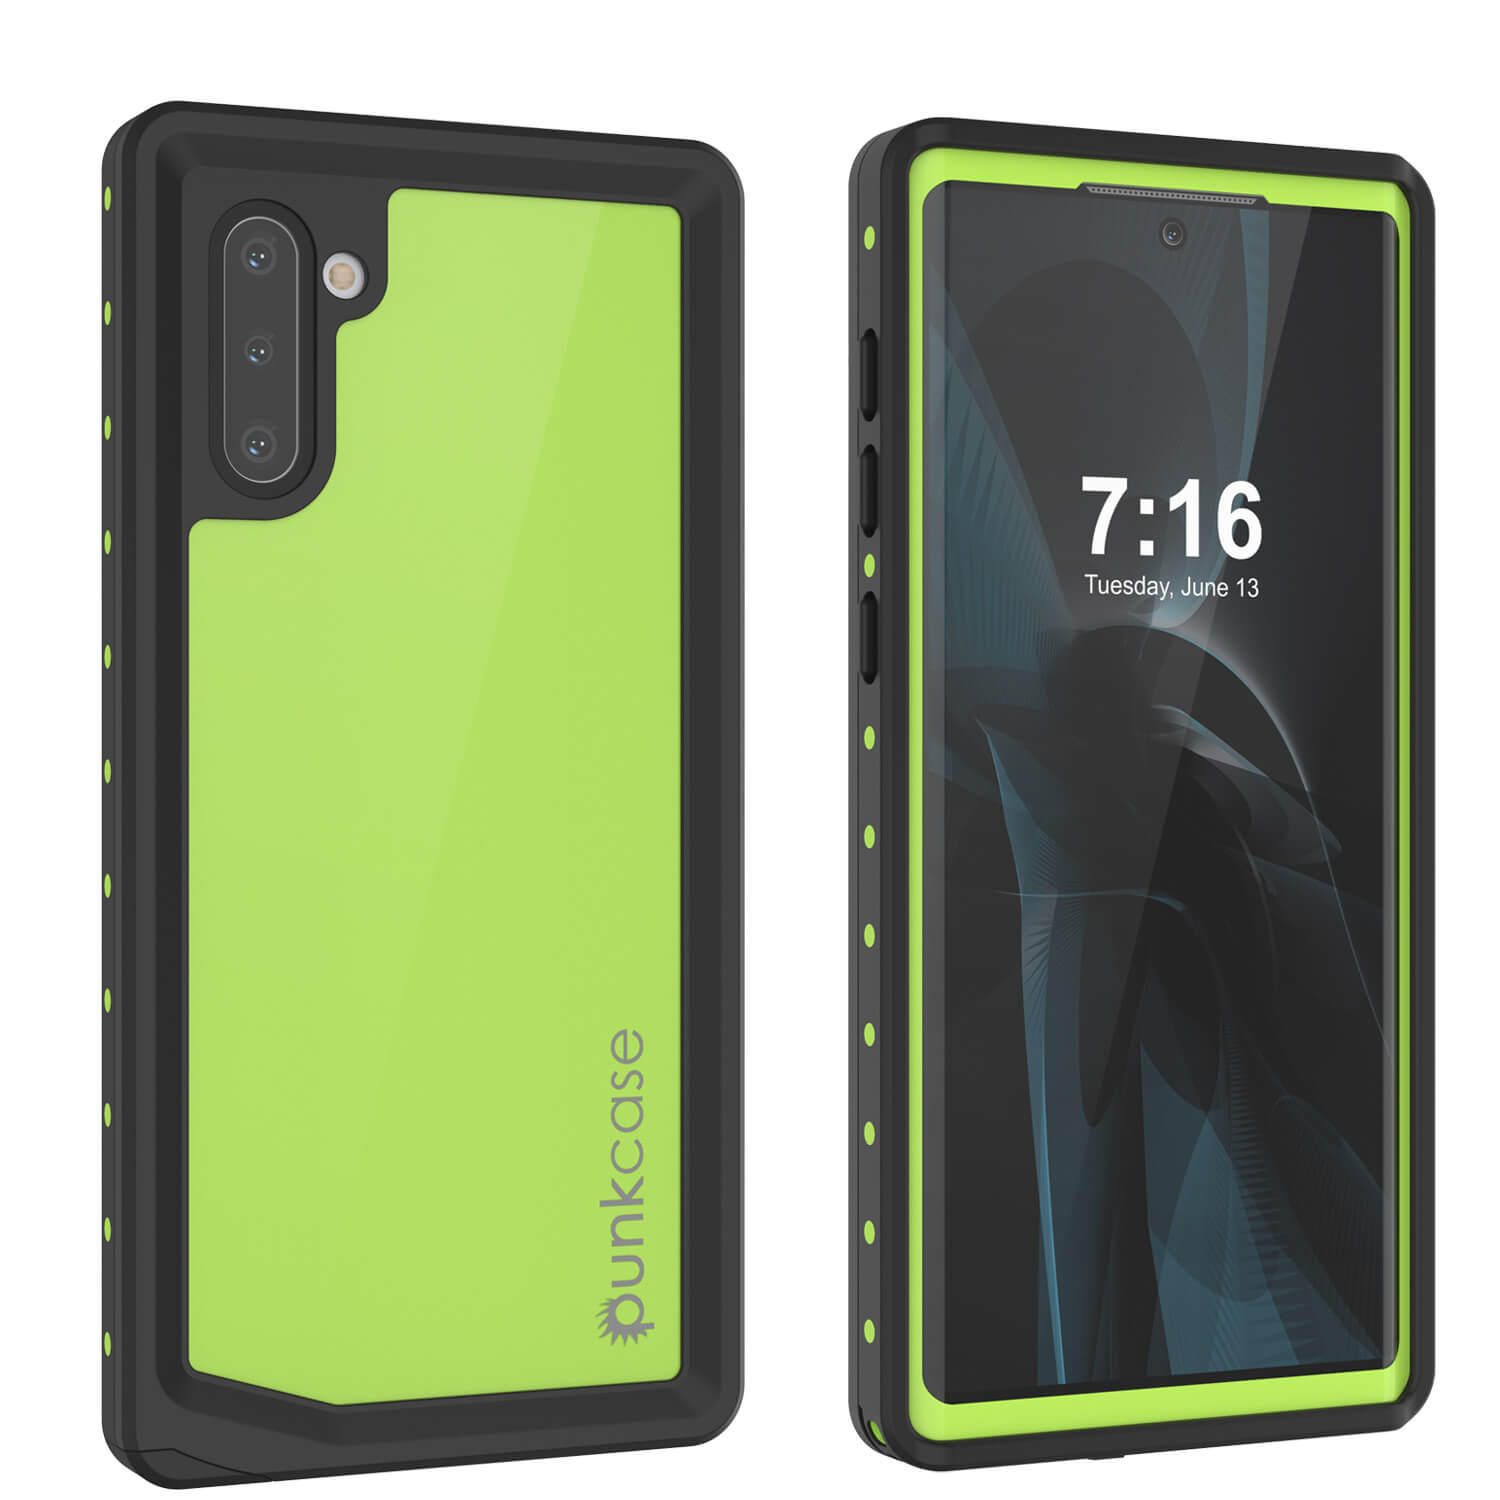 Galaxy Note 10 Waterproof Case, Punkcase Studstar Light Green Thin Armor Cover